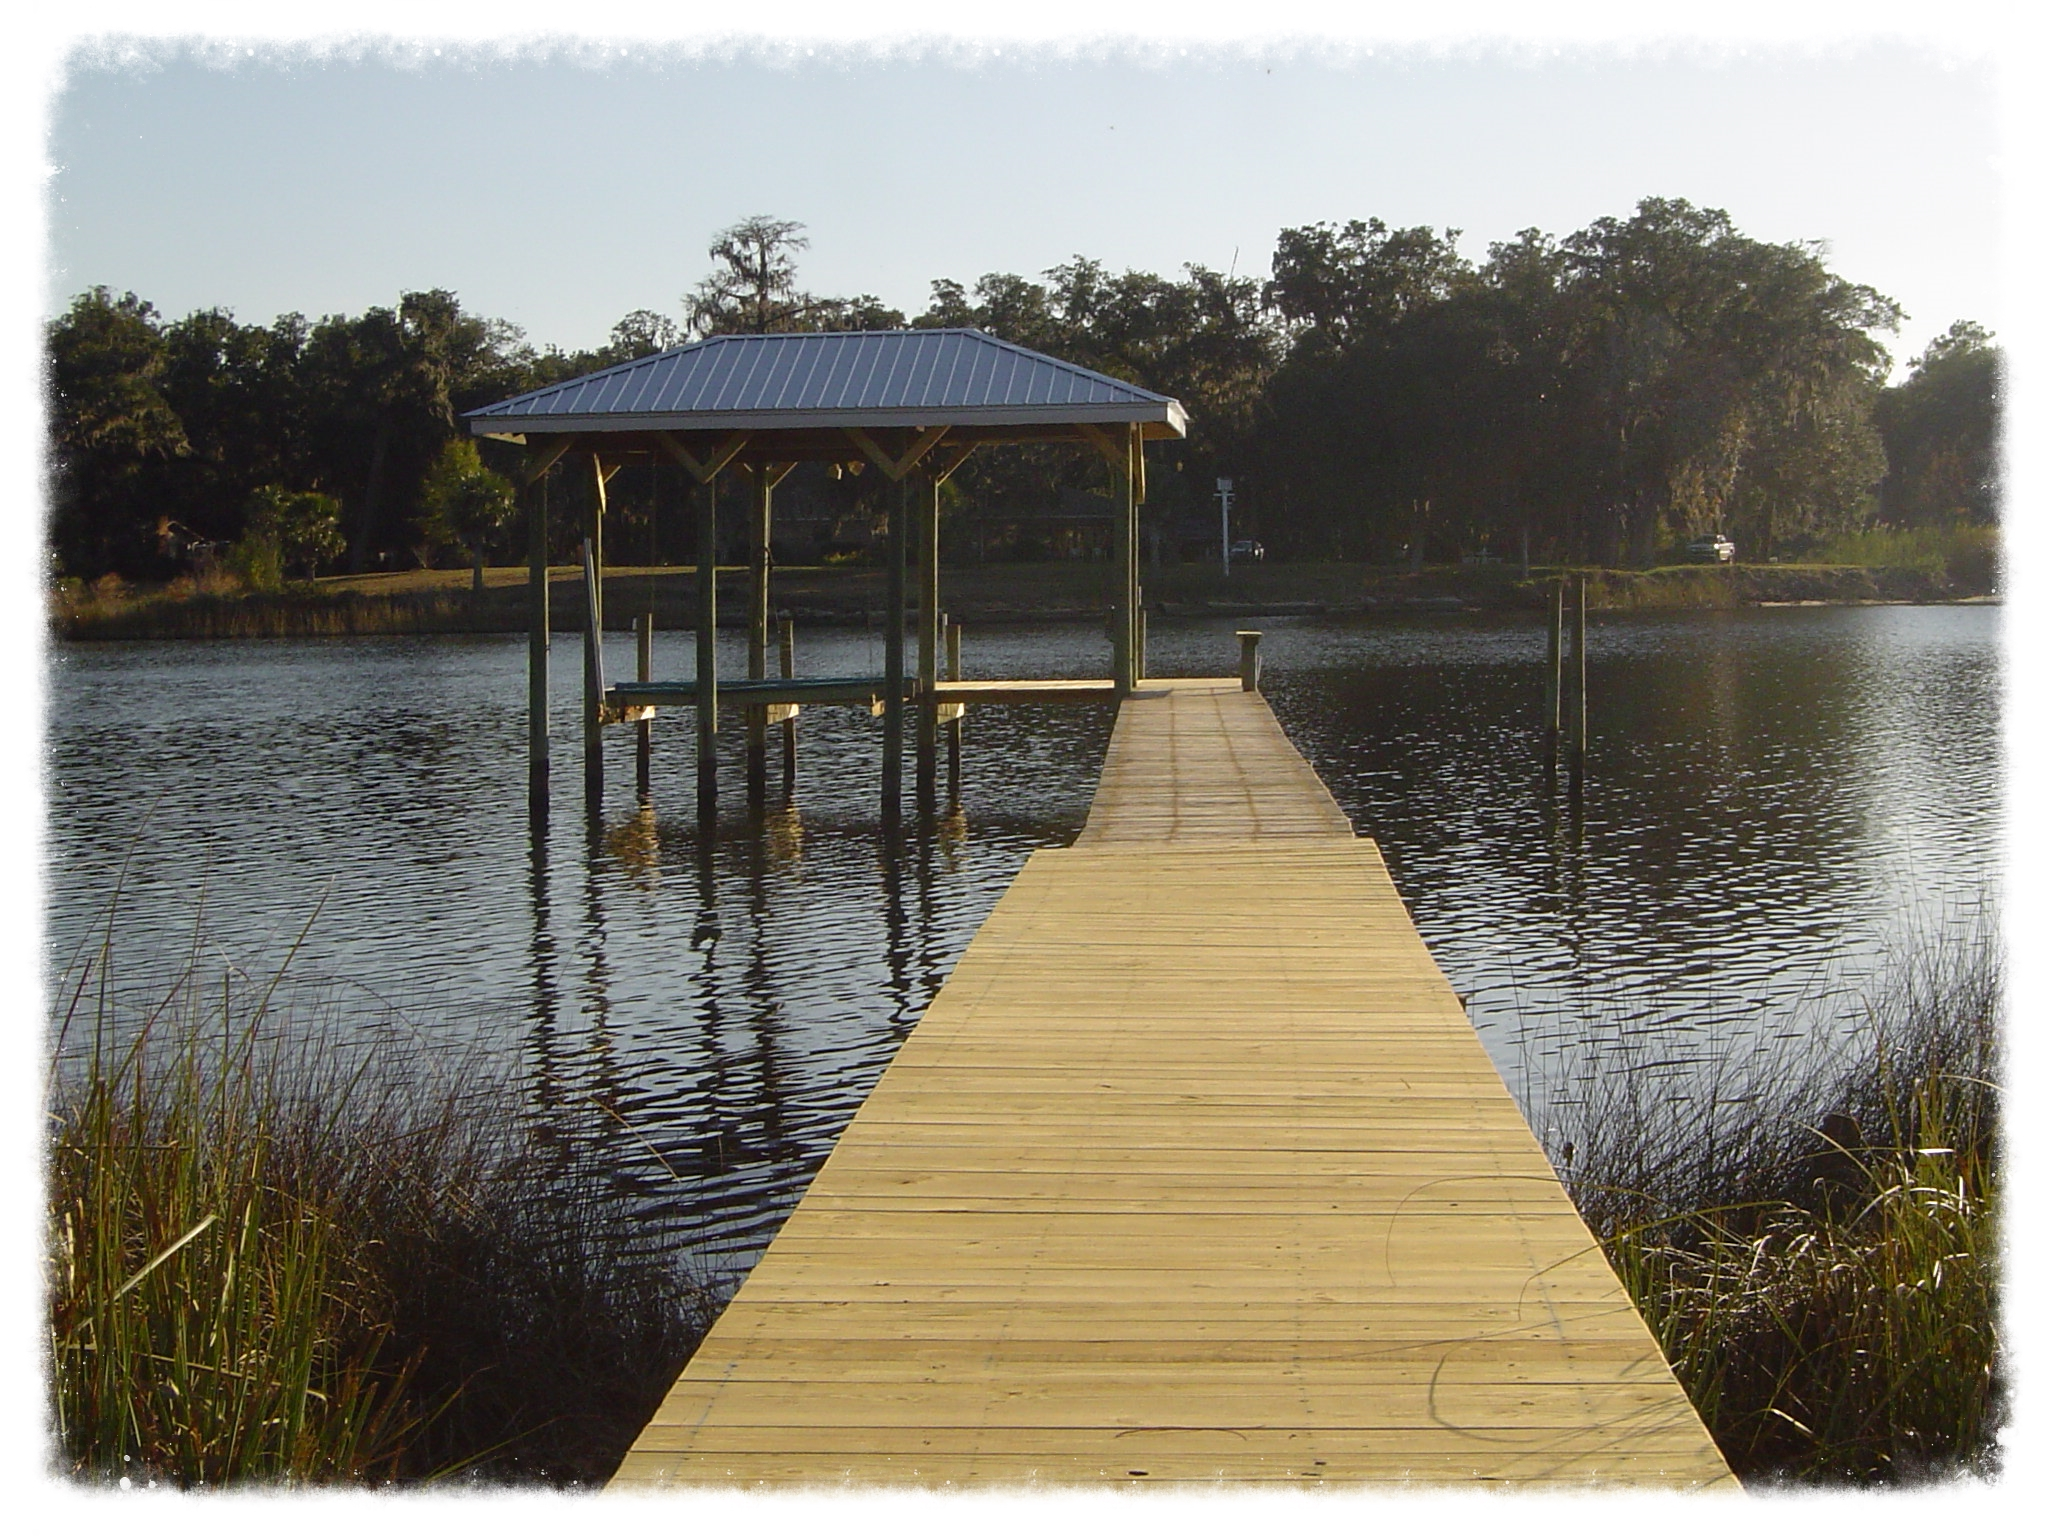 Boardwalk and boathouse